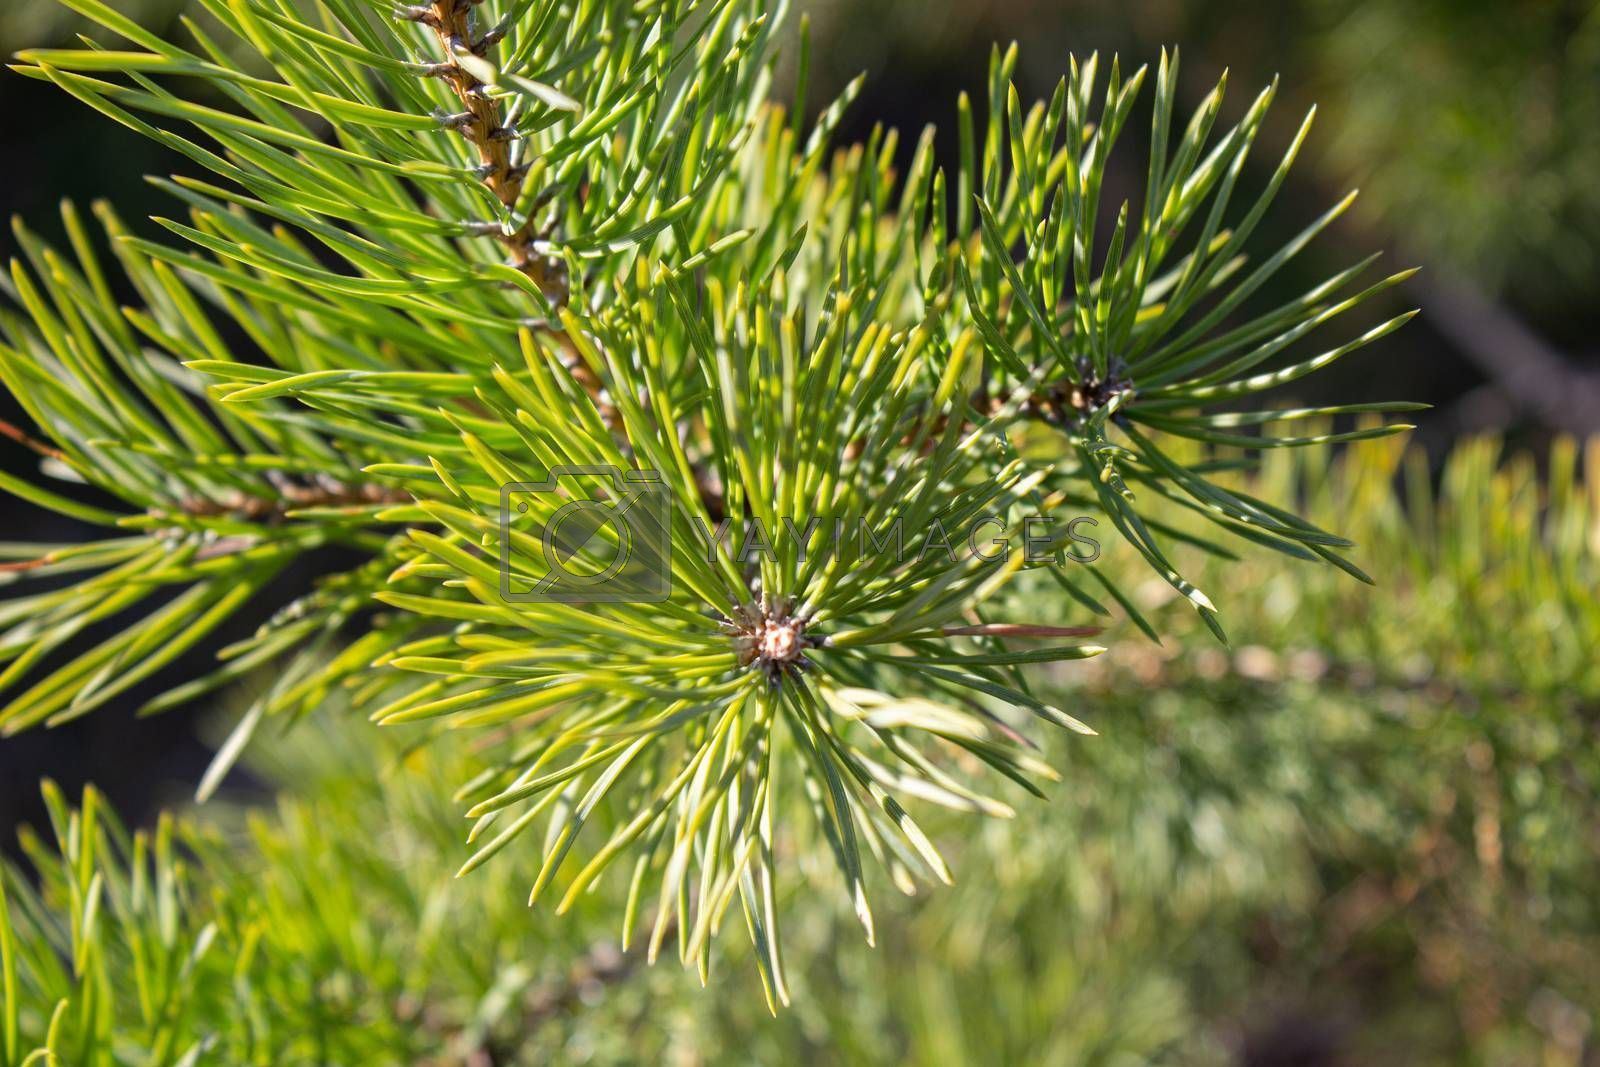 Horizontal photo depicting a bright evergreen pine tree green needles branches. Fir-tree, conifer, spruce close up, blurred background. Europe, Balkan Mountains.